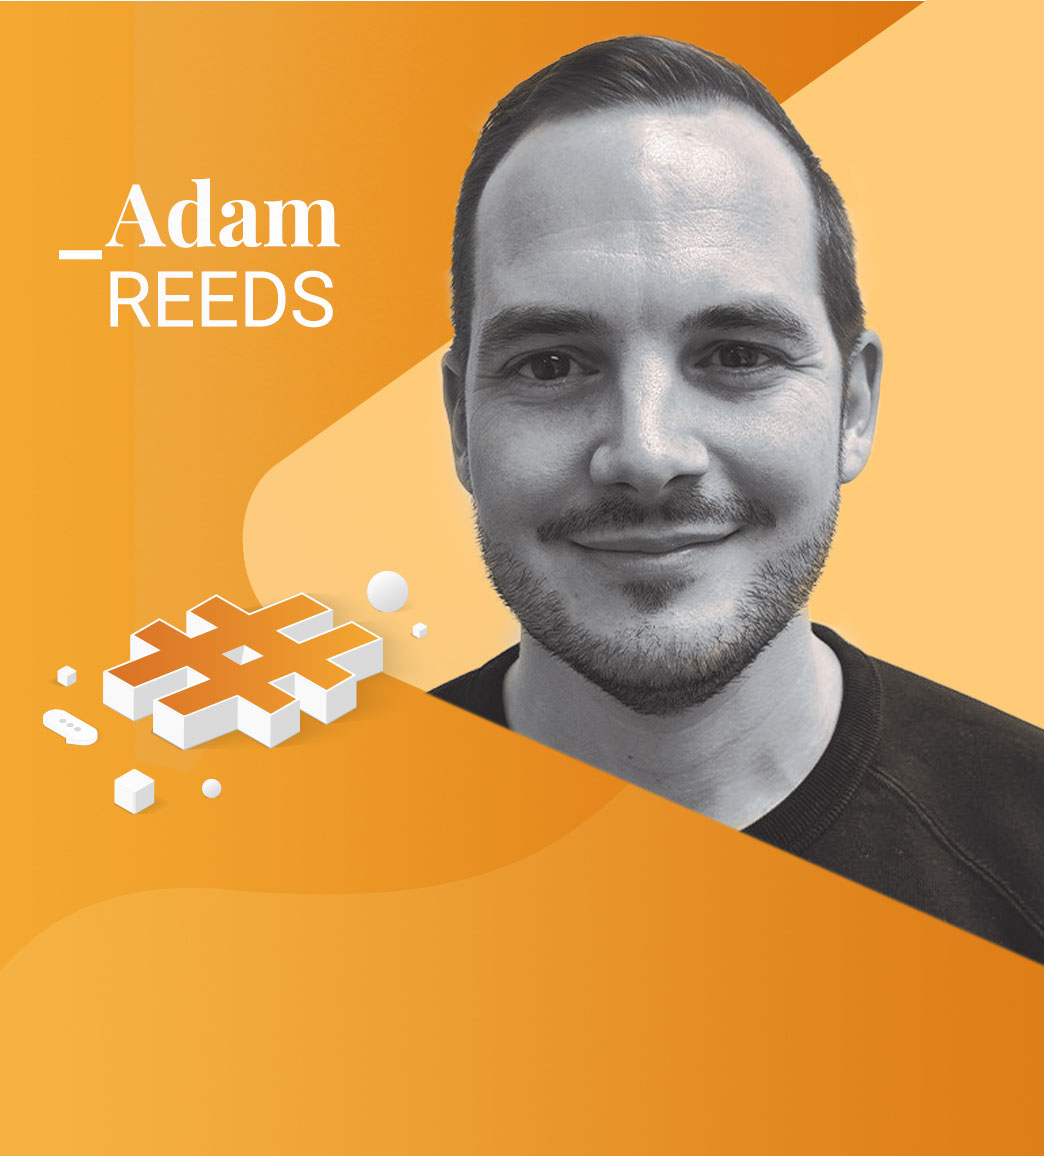 Digital Assets and Blockchain Conversations with Special Guest Adam Reeds, Co-Founder and CEO of Ledn.io